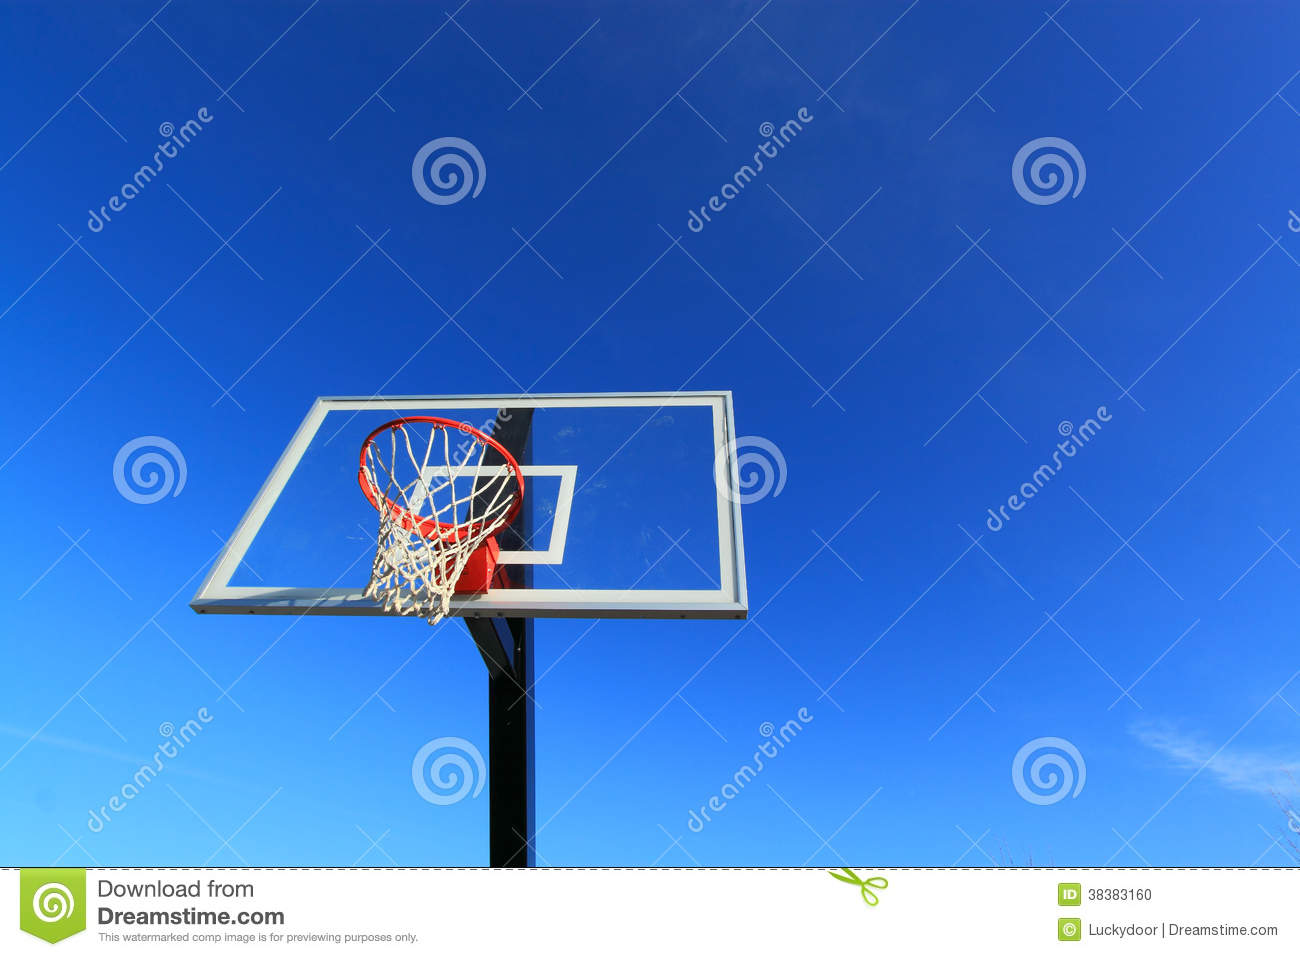 Basketball Hoop with Blue Background